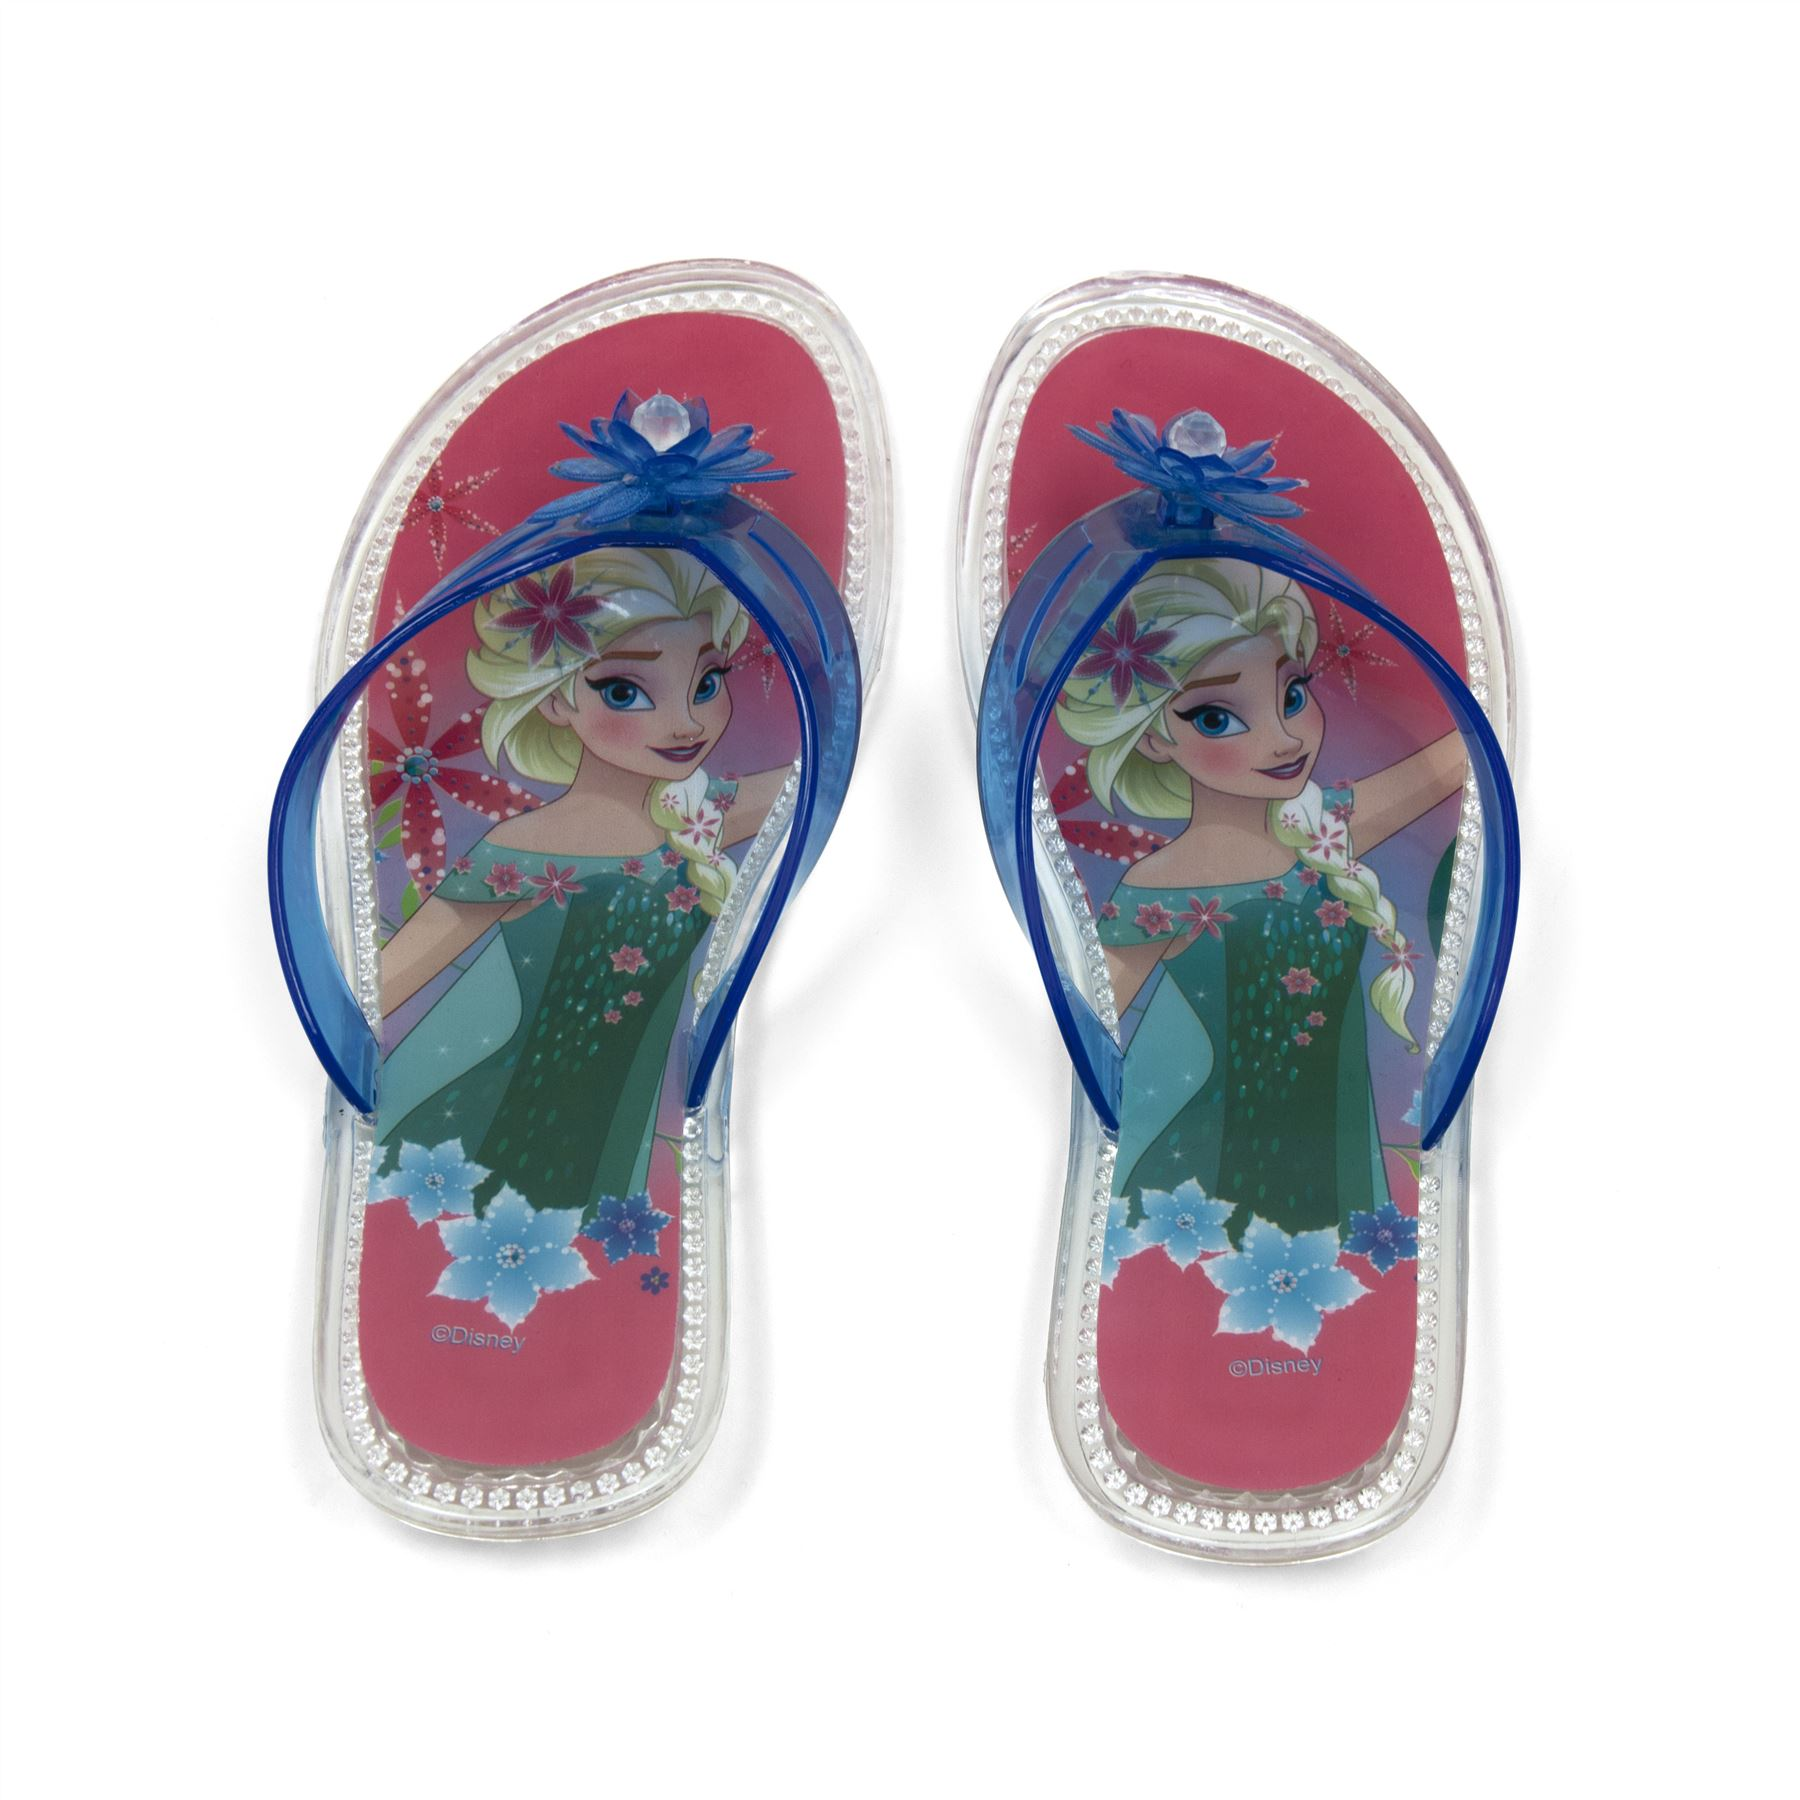 dd0a345469fce Disney® Frozen Elsa Girls Flip Flops Sandals Slippers Shoes UK Sizes 10 to  2.5